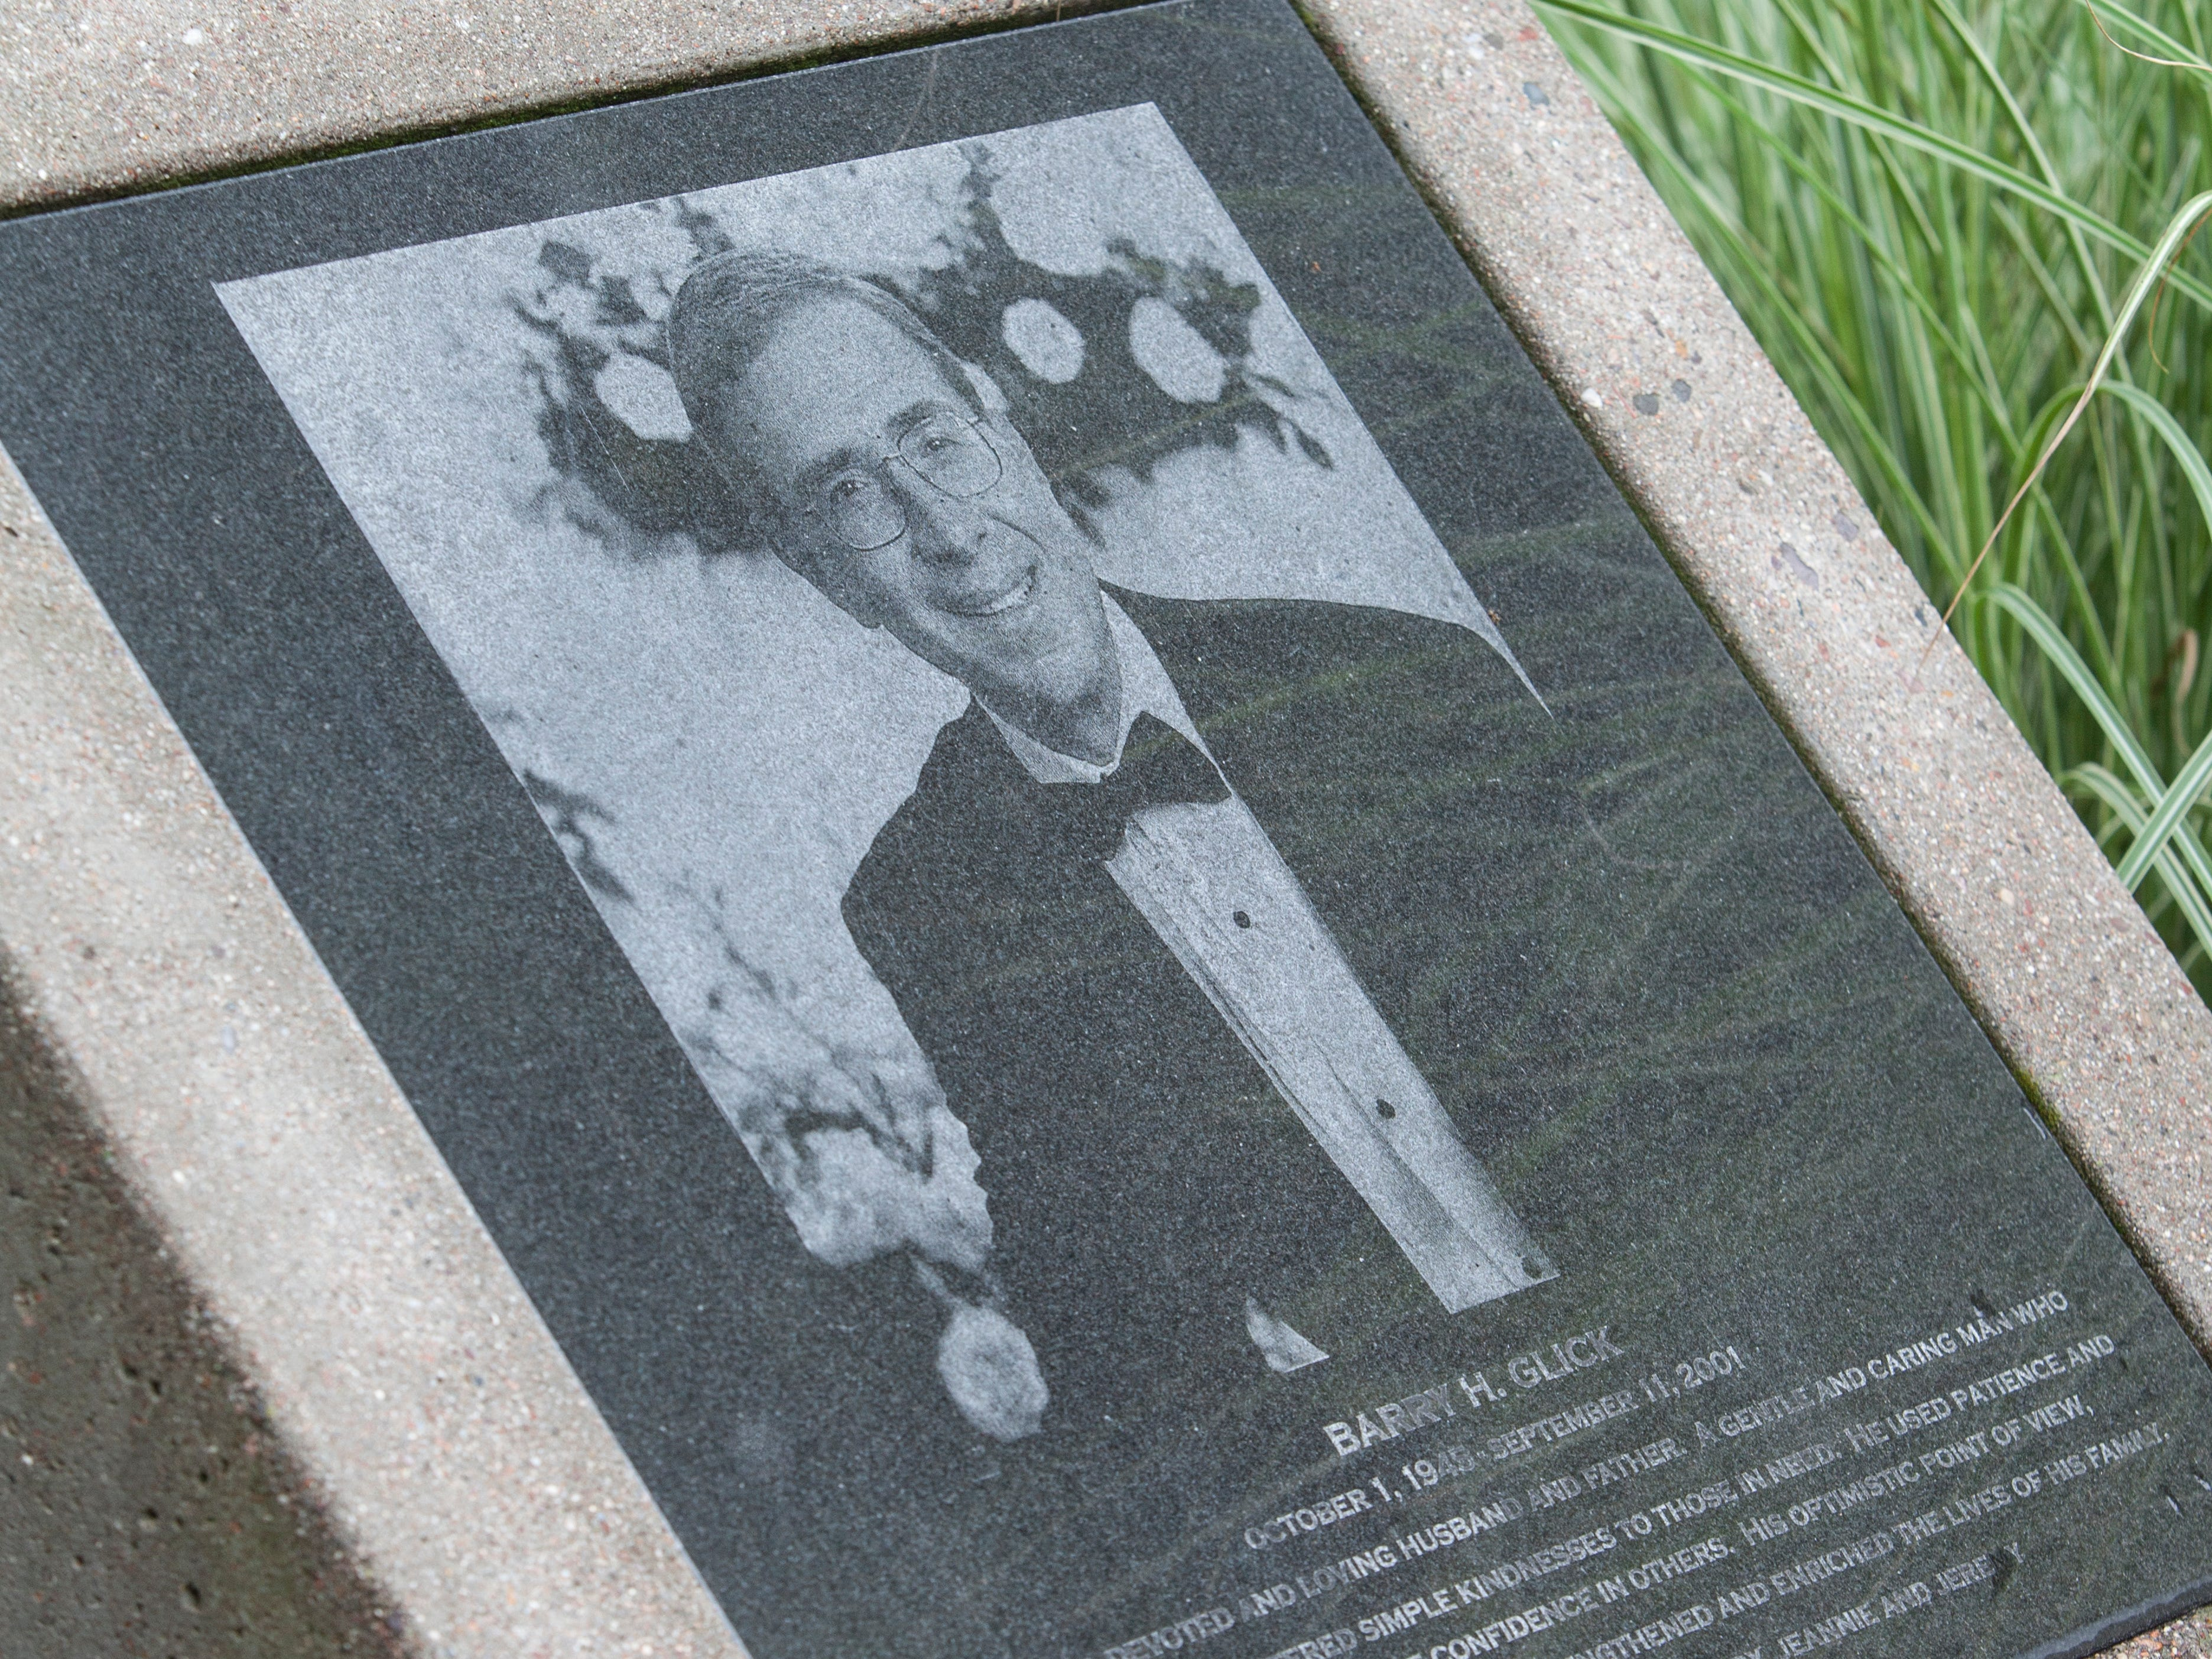 Barry H. Glick is pictured on his memorial at the Wayne library in Wayne.